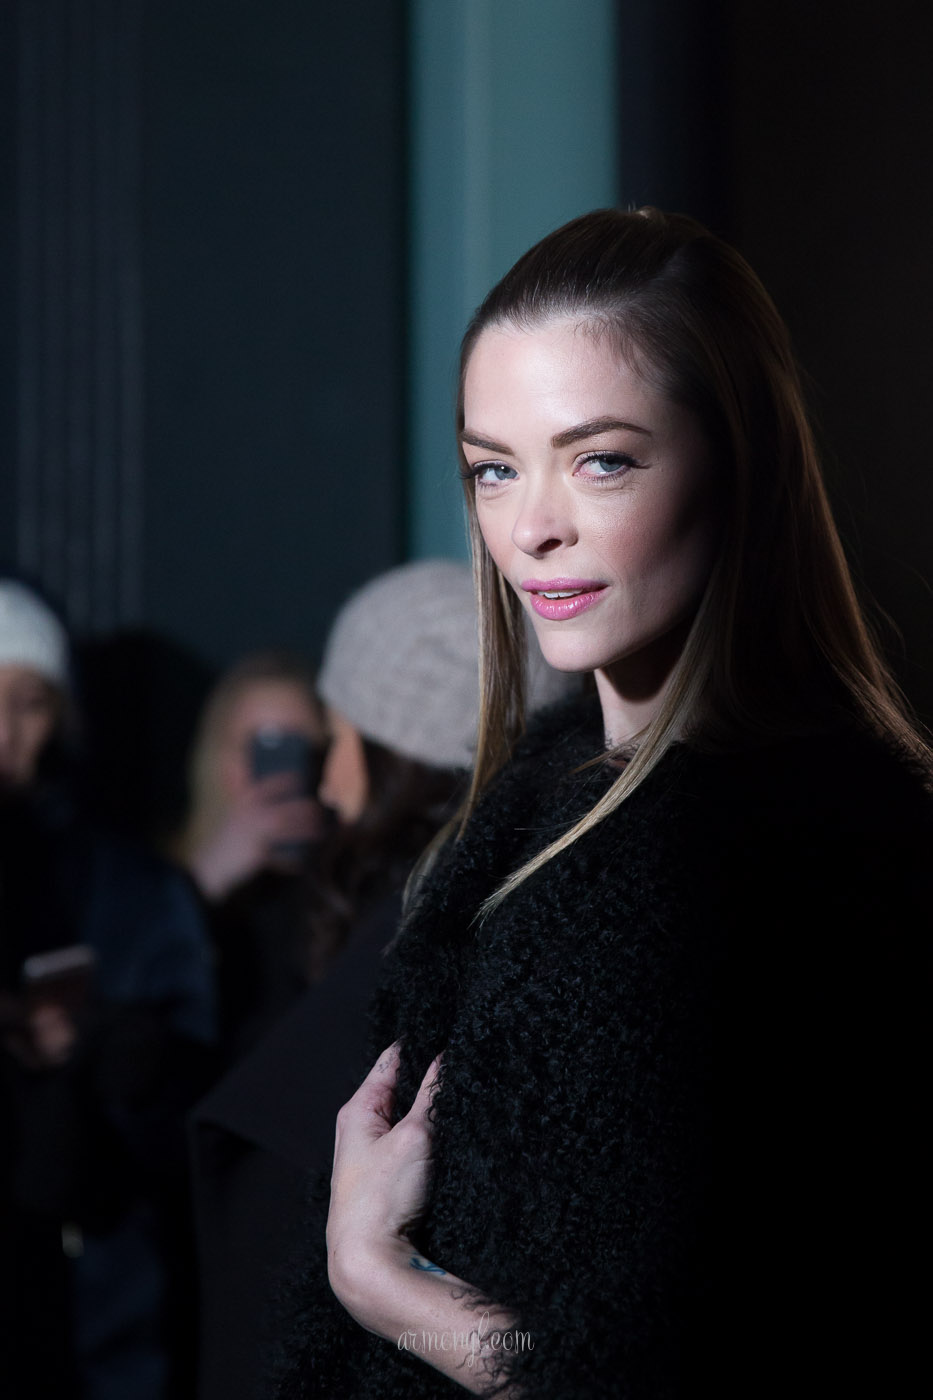 Actress Jamie King at DVF FW 2016 show in New york for New york Fashion Week photo by armenyl.com